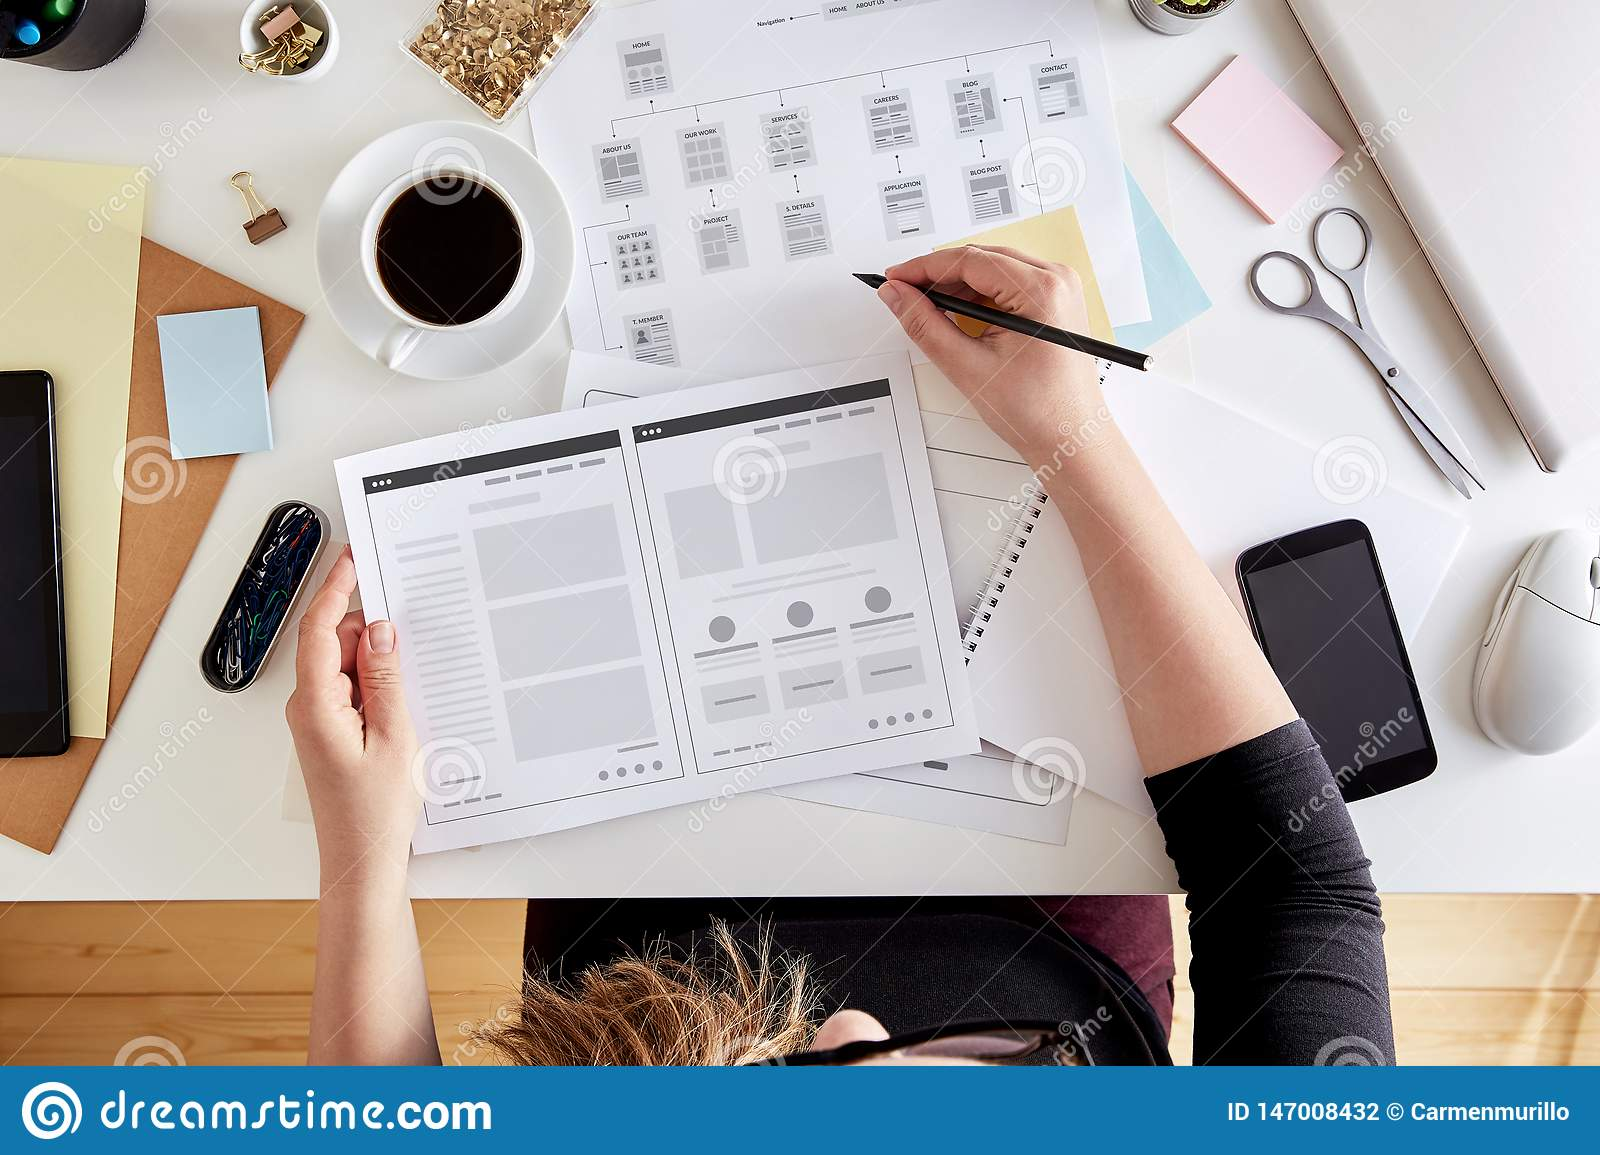 Wireframing stage of a web design project